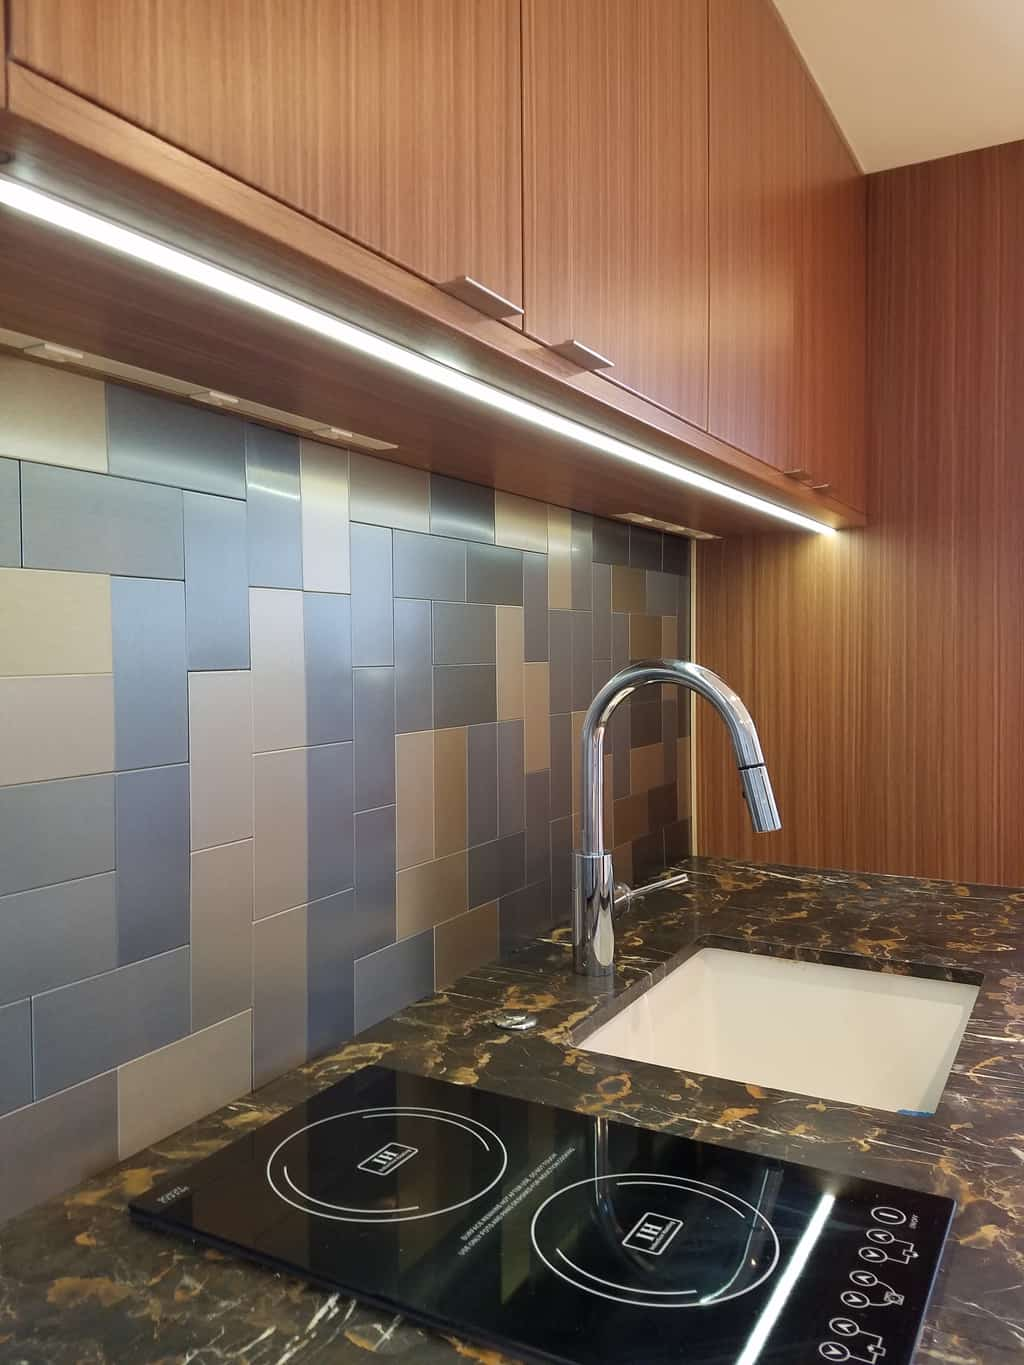 cabinet lighting likable kitchen temperature cabinets light tape under strip flexible dimmable to kit lights variable for installing strips color led cupboards design